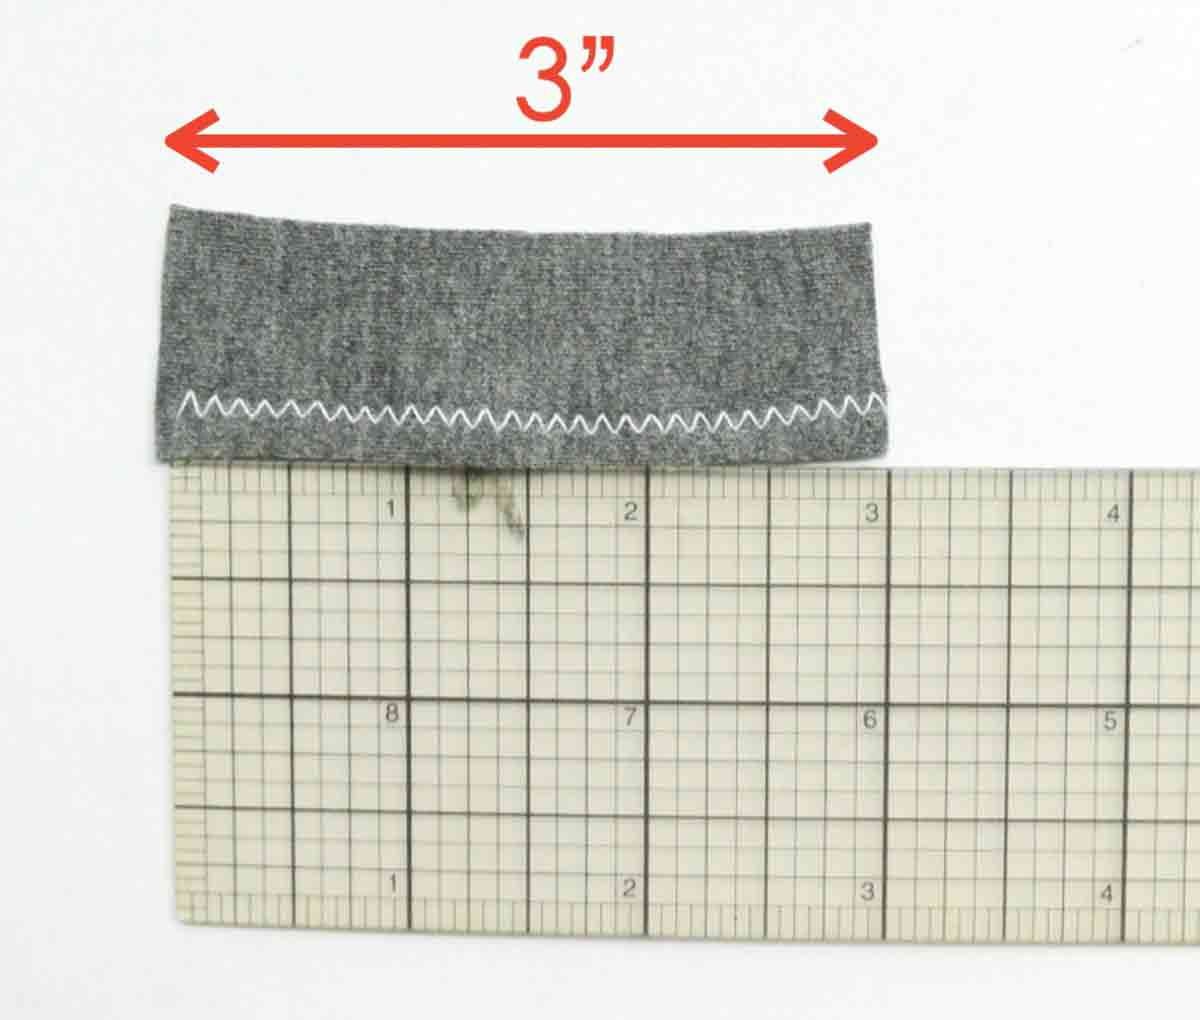 Shot and wide zigzag stitch measuring 3 inches on a rule